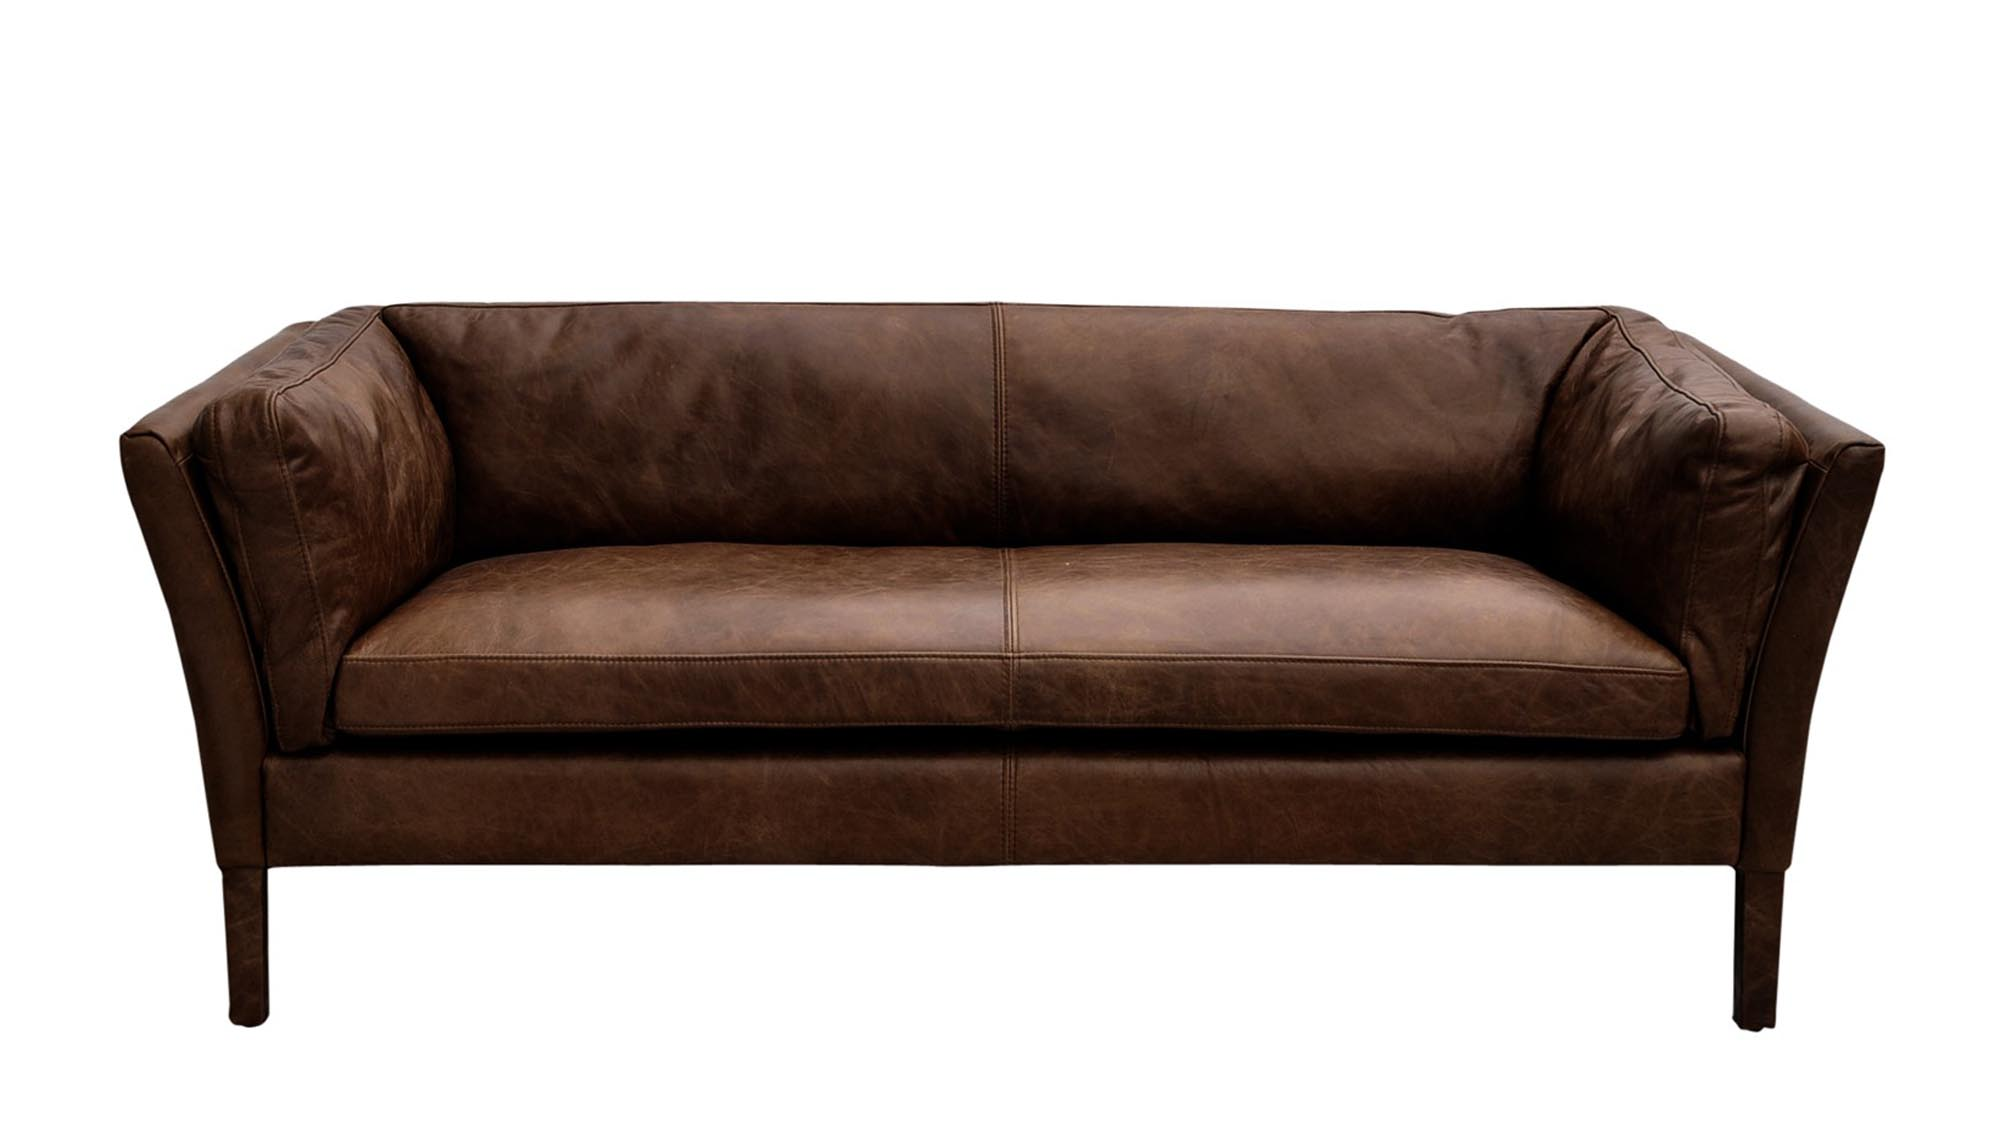 Best sofa 2018 find the perfect sofa for your living room for Best place for inexpensive furniture